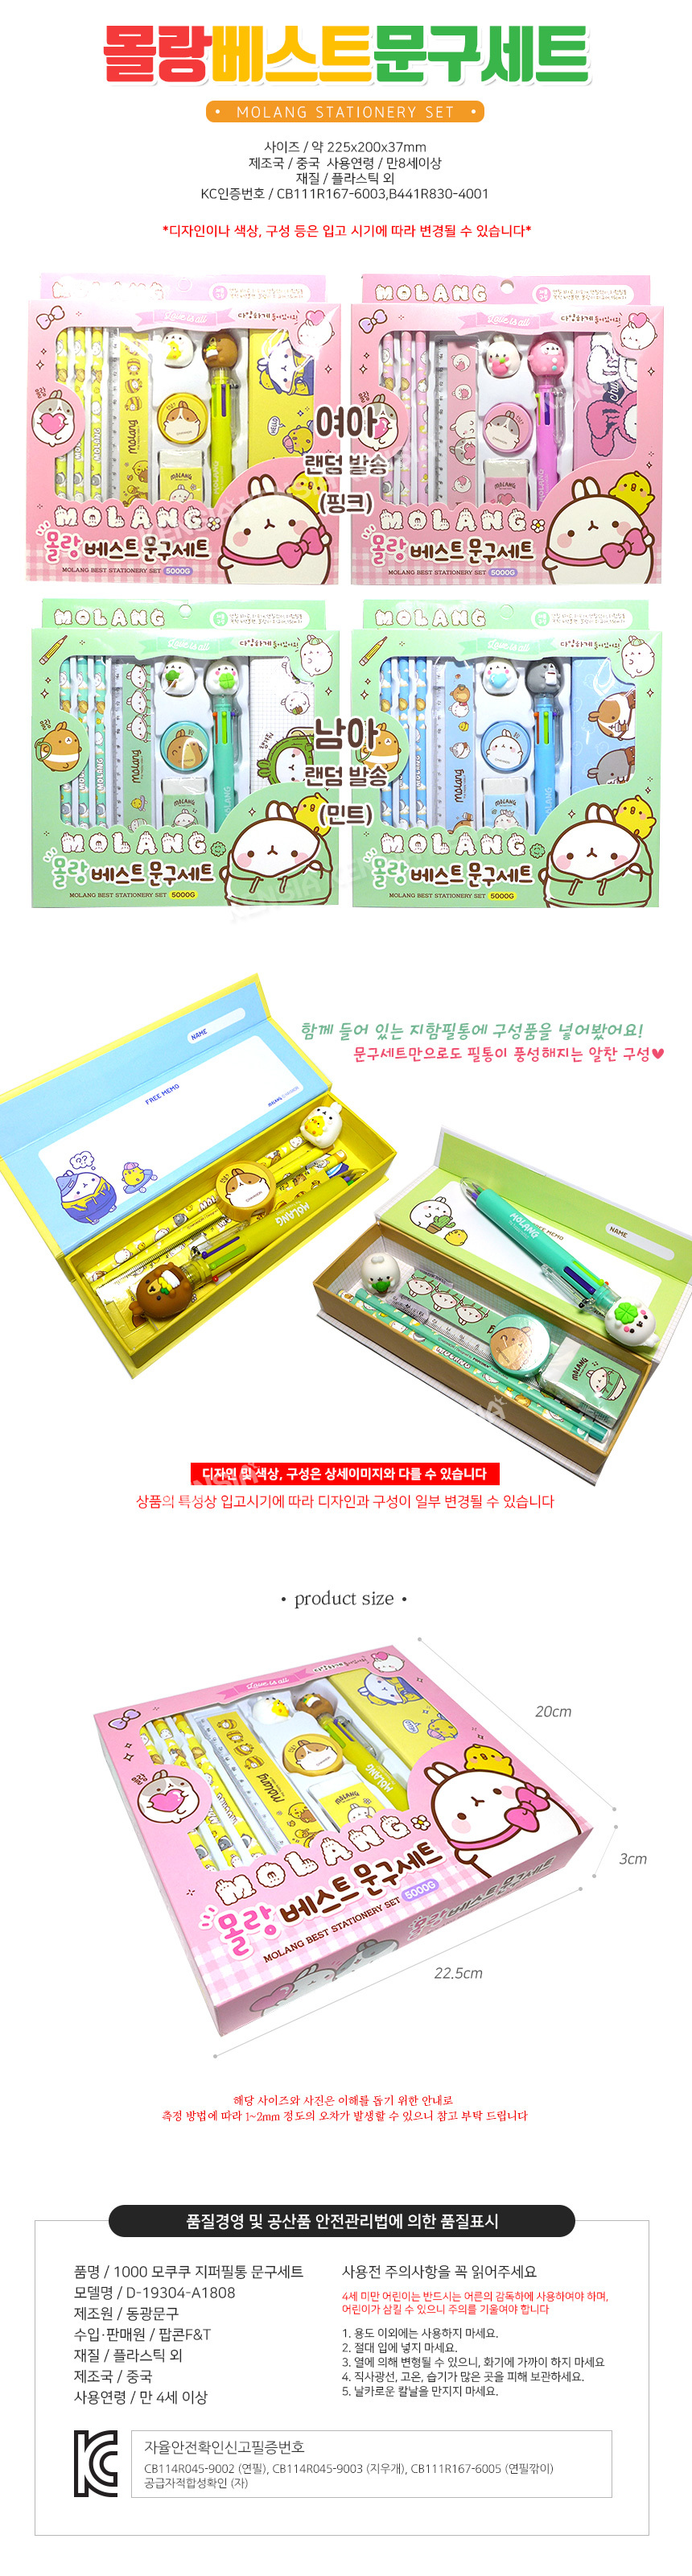 5000_molang_best_stationery_set.jpg